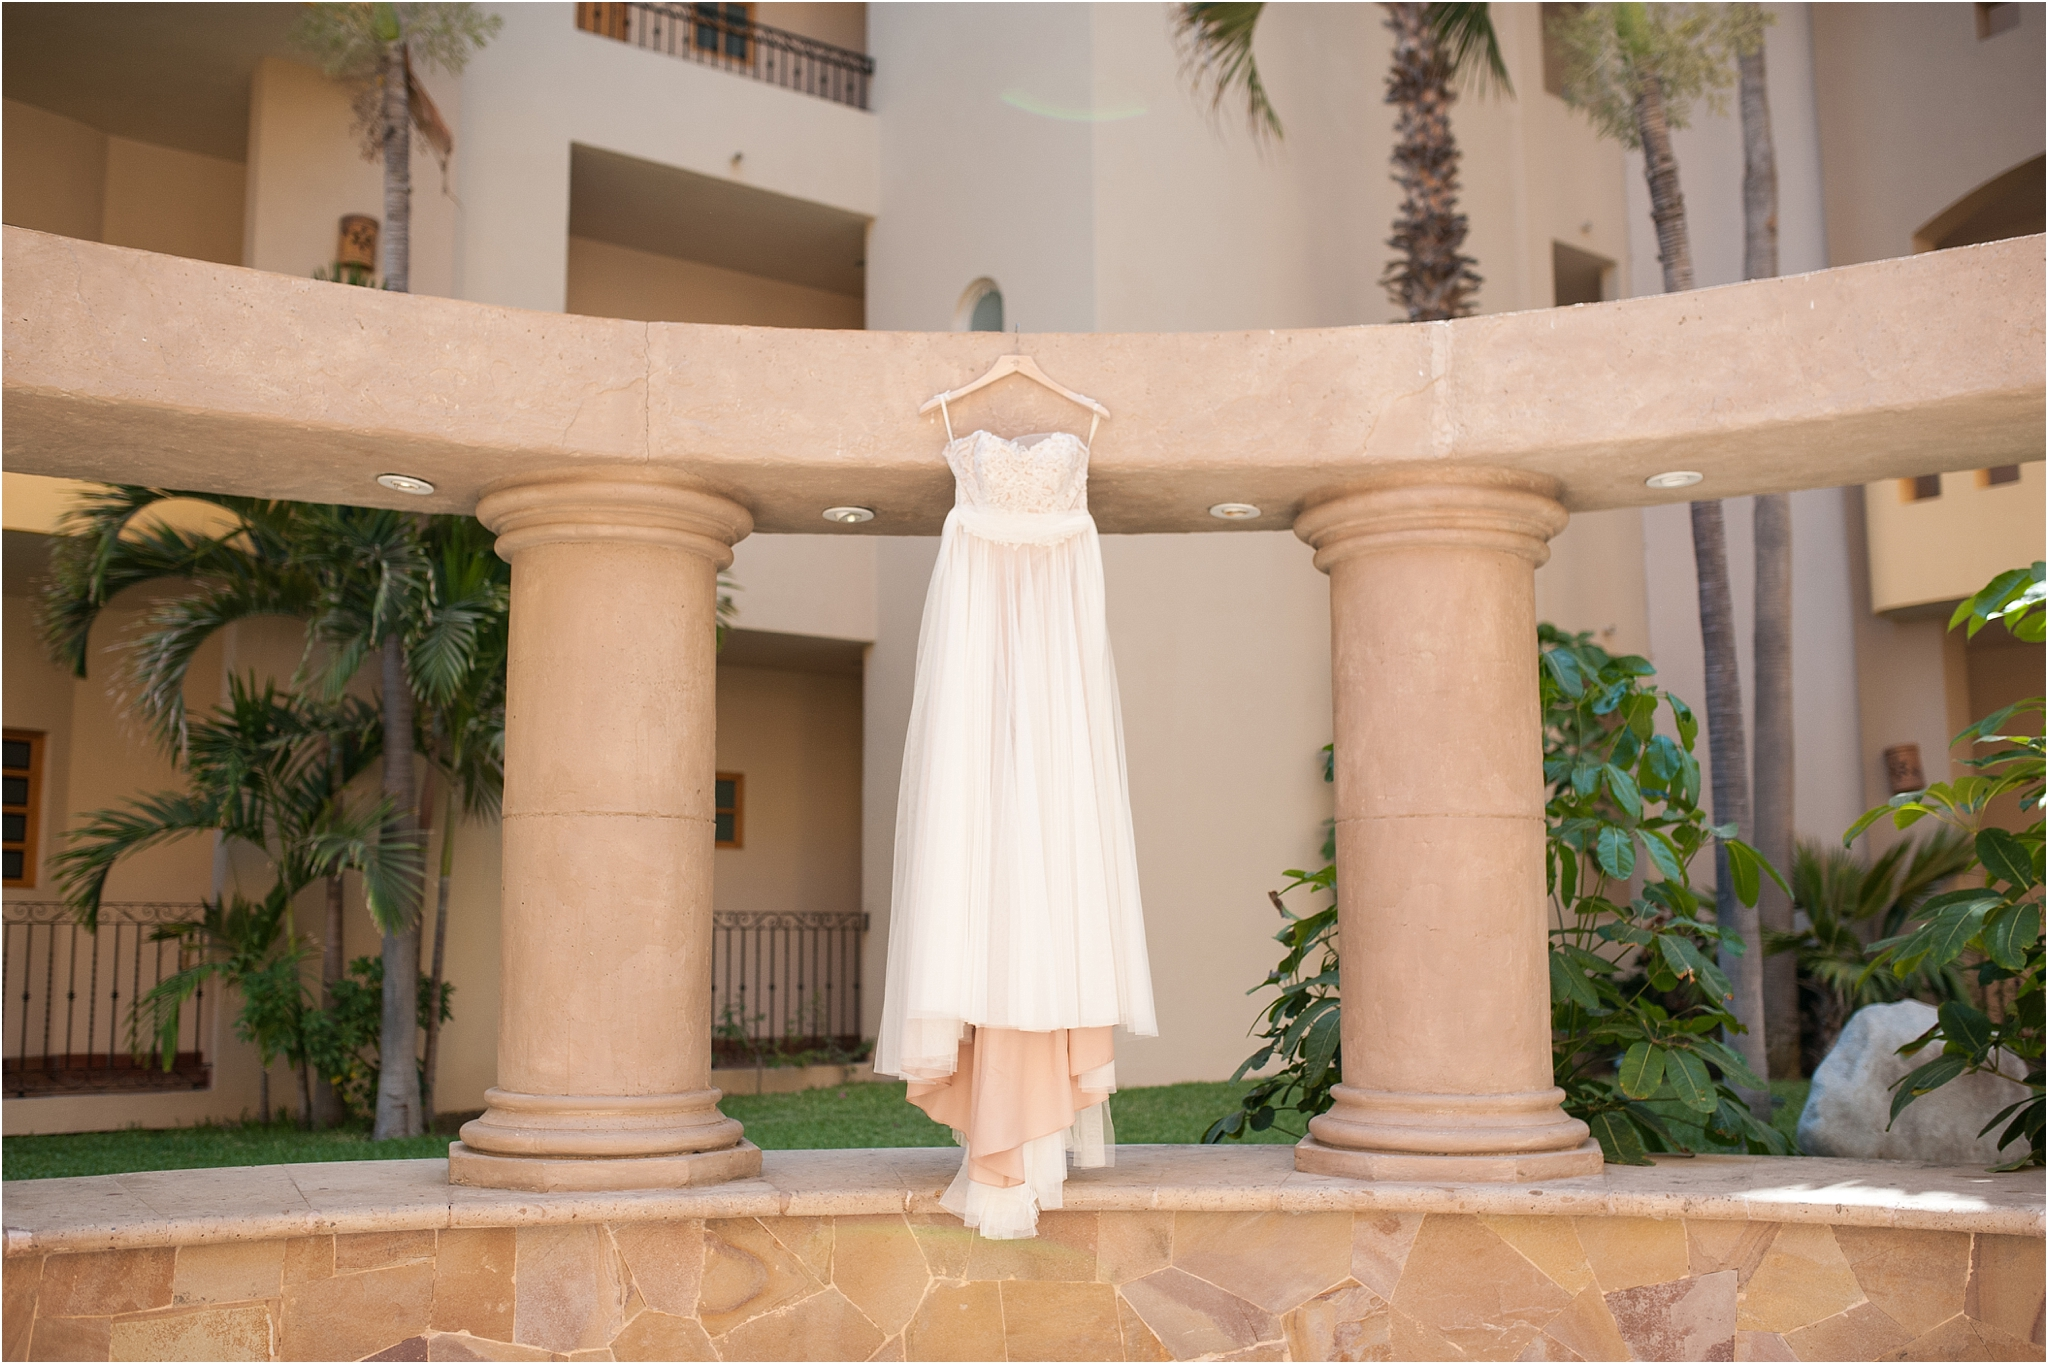 kayla kitts photography - albuquerque wedding photographer - new mexico wedding photographer - desination wedding photographer - cabo wedding photographer_0065.jpg